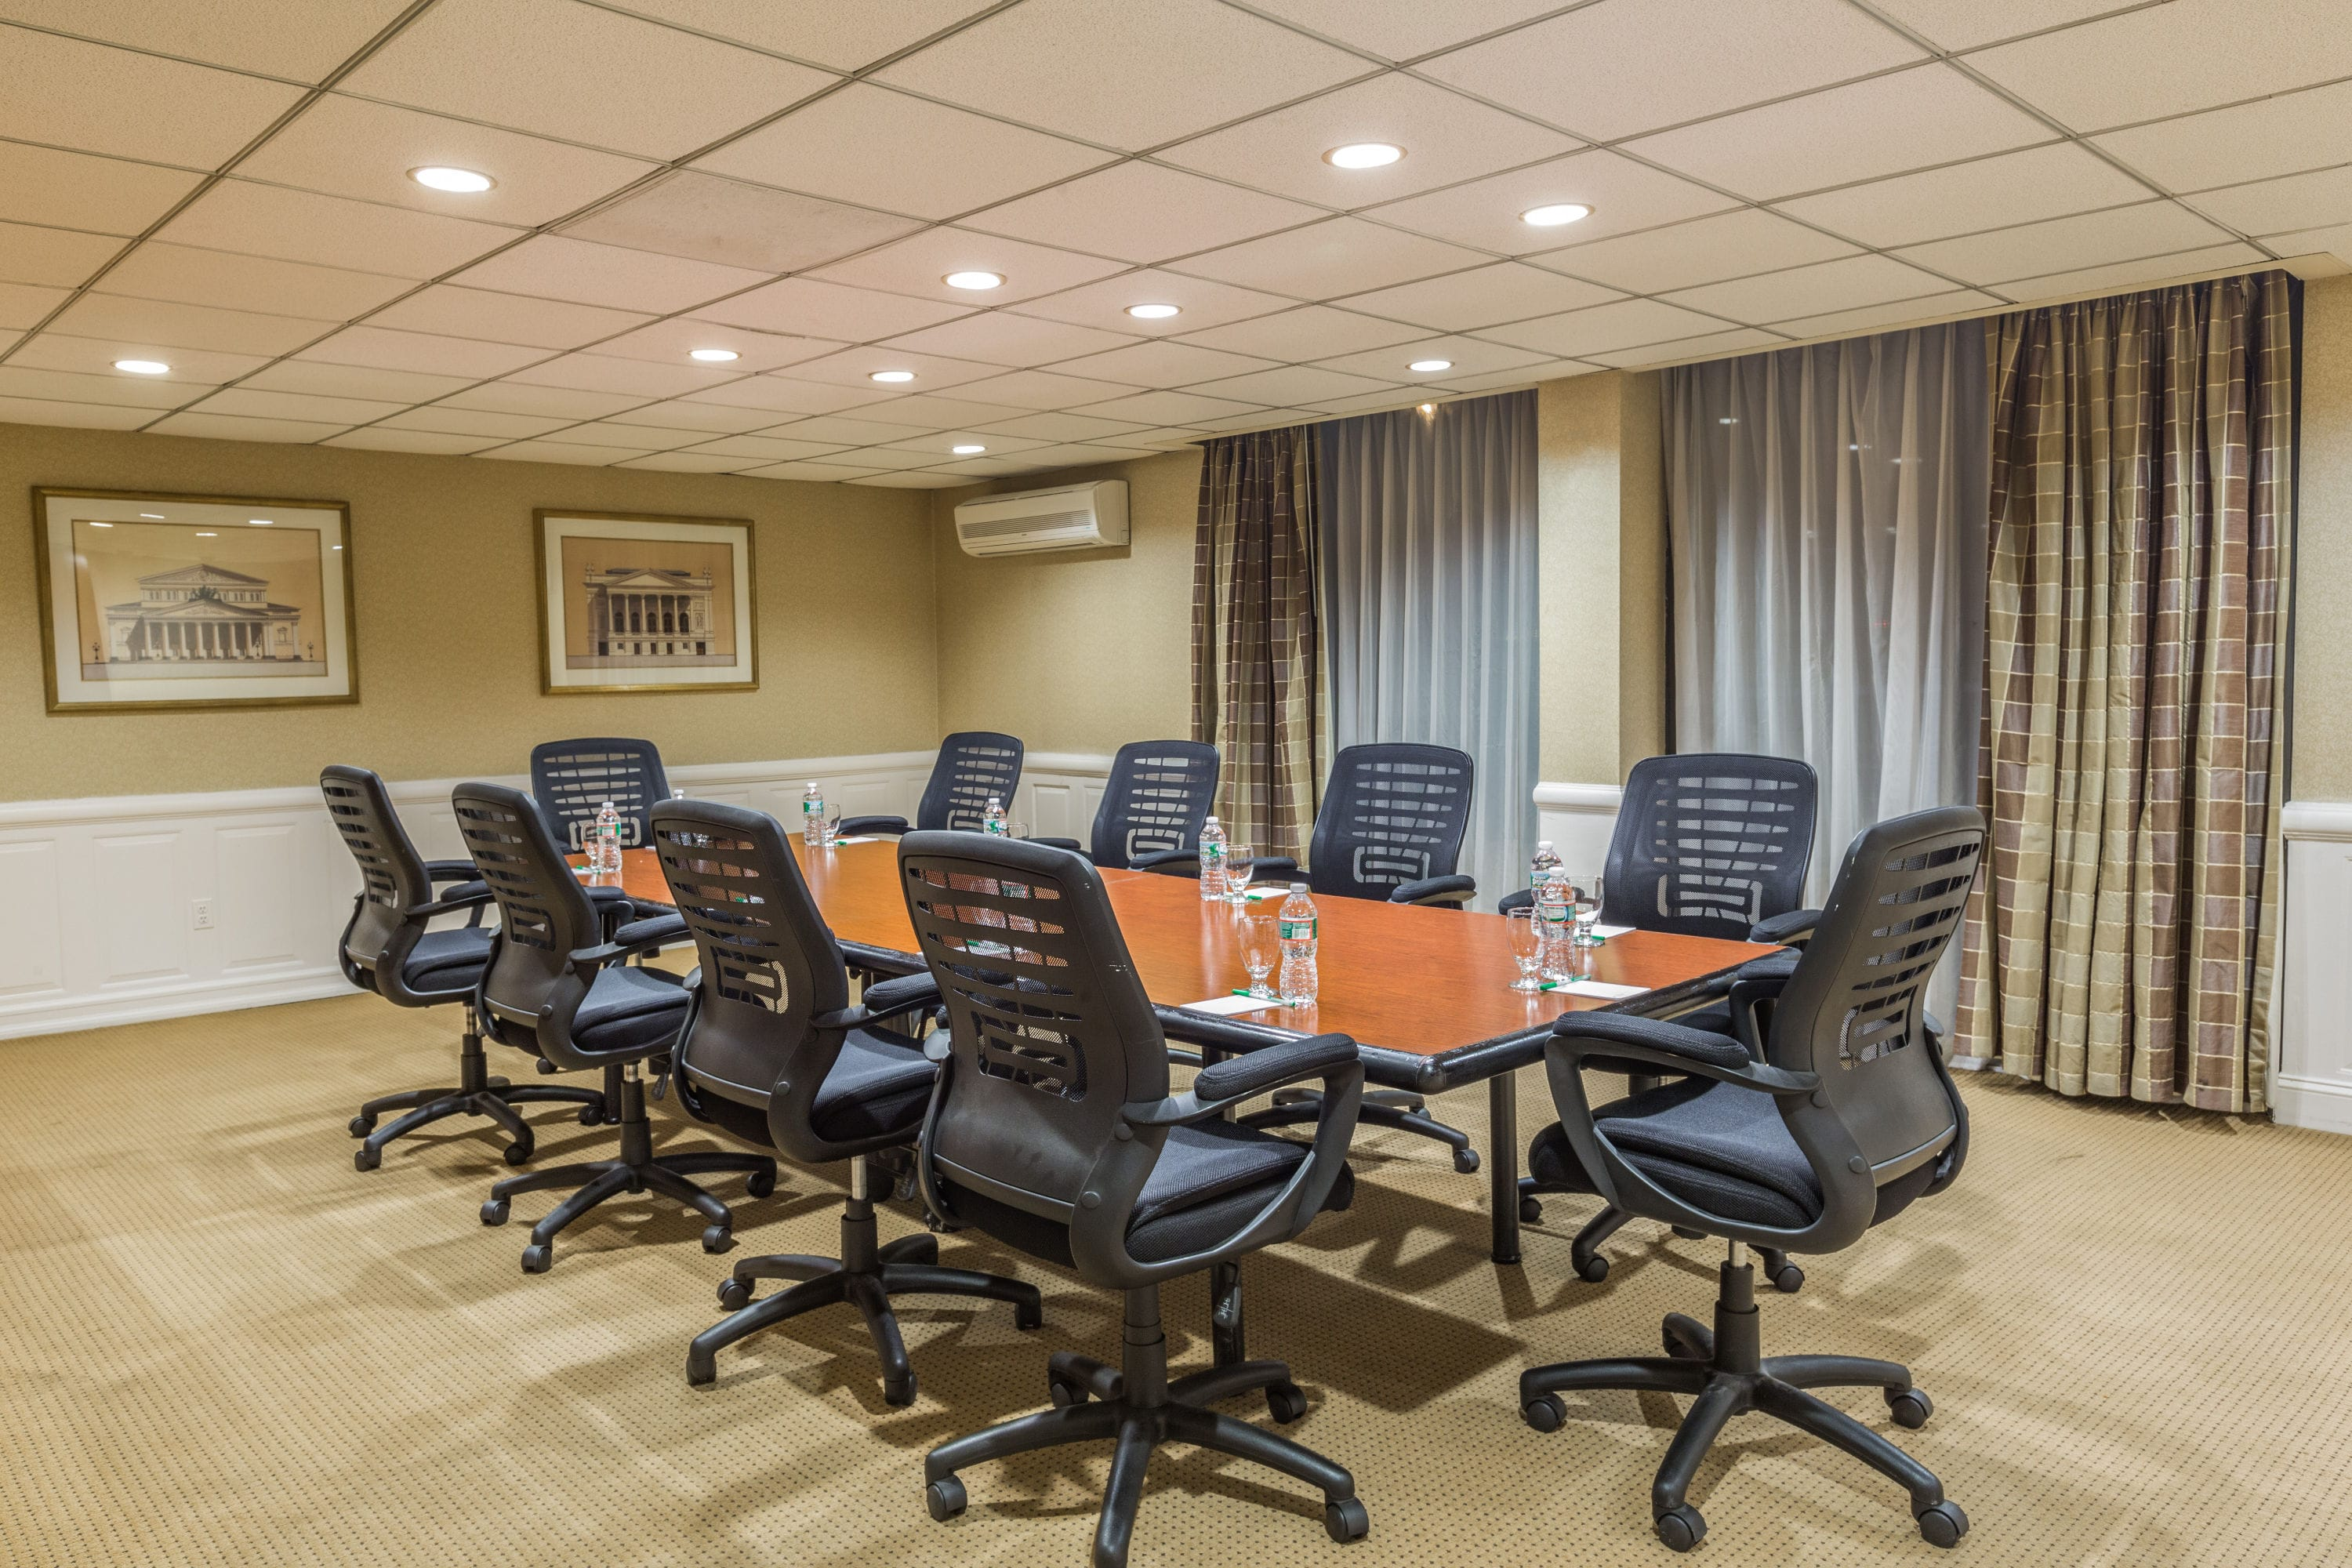 Meeting Room At Wyndham Garden Newark Airport In Newark, New Jersey